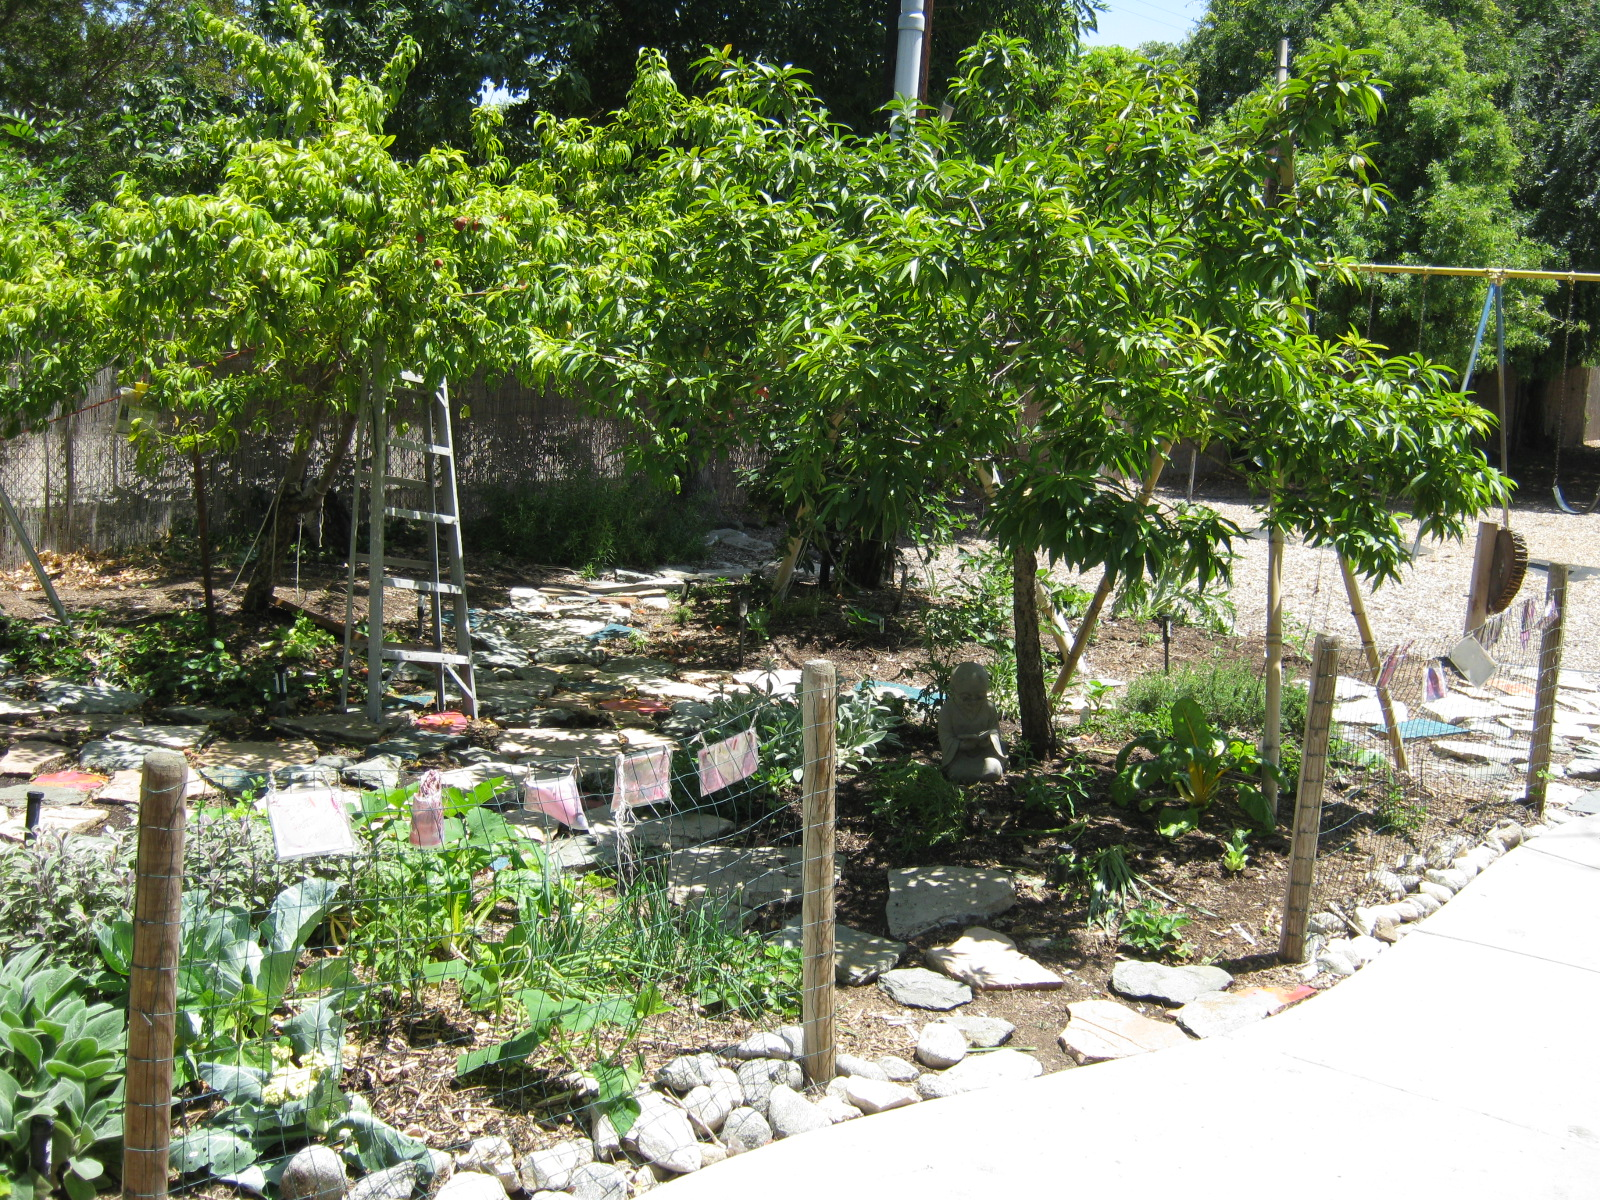 The garden at Barnhart School